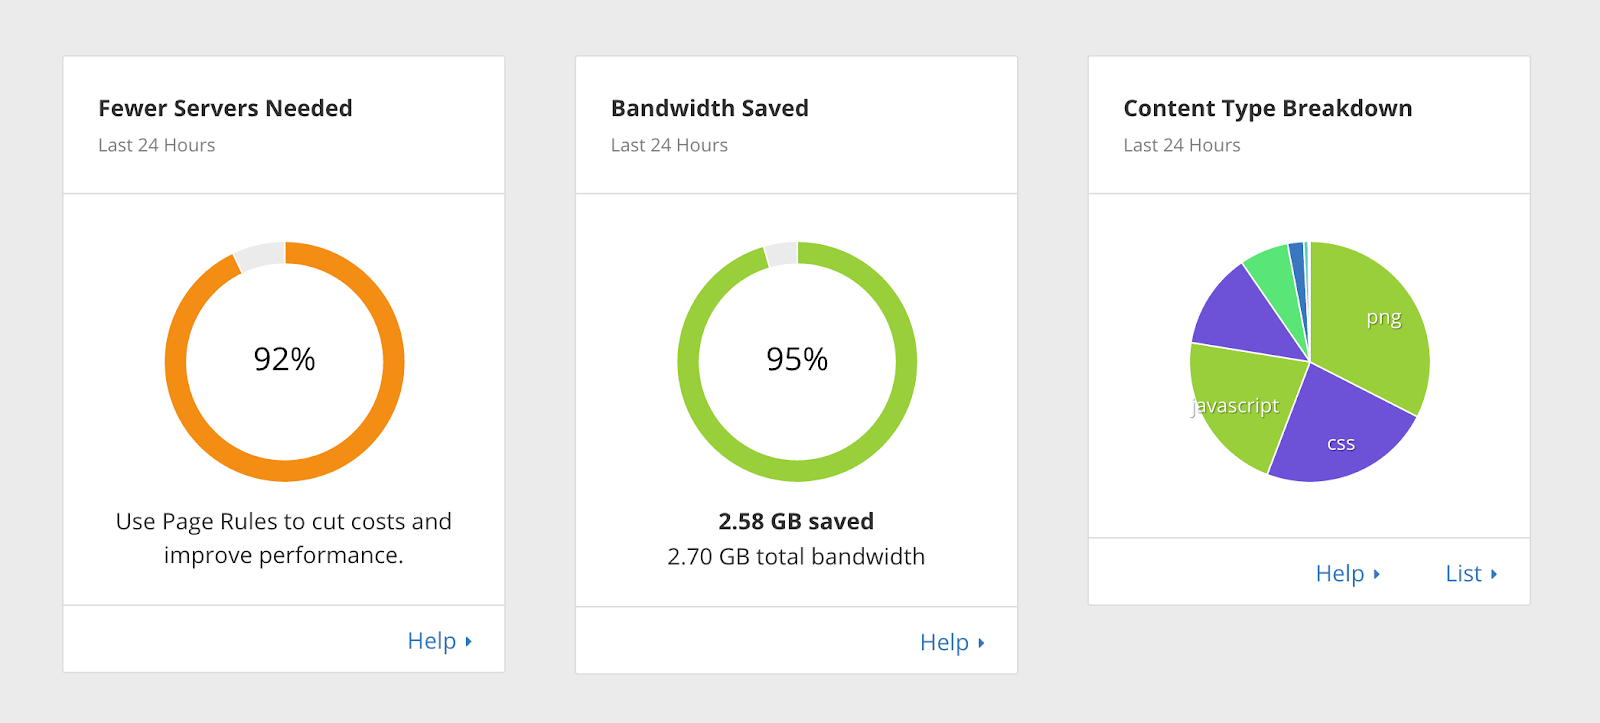 CloudFlare analytics dashboard shows bandwidth saved, performance improvement, and content type breakdown